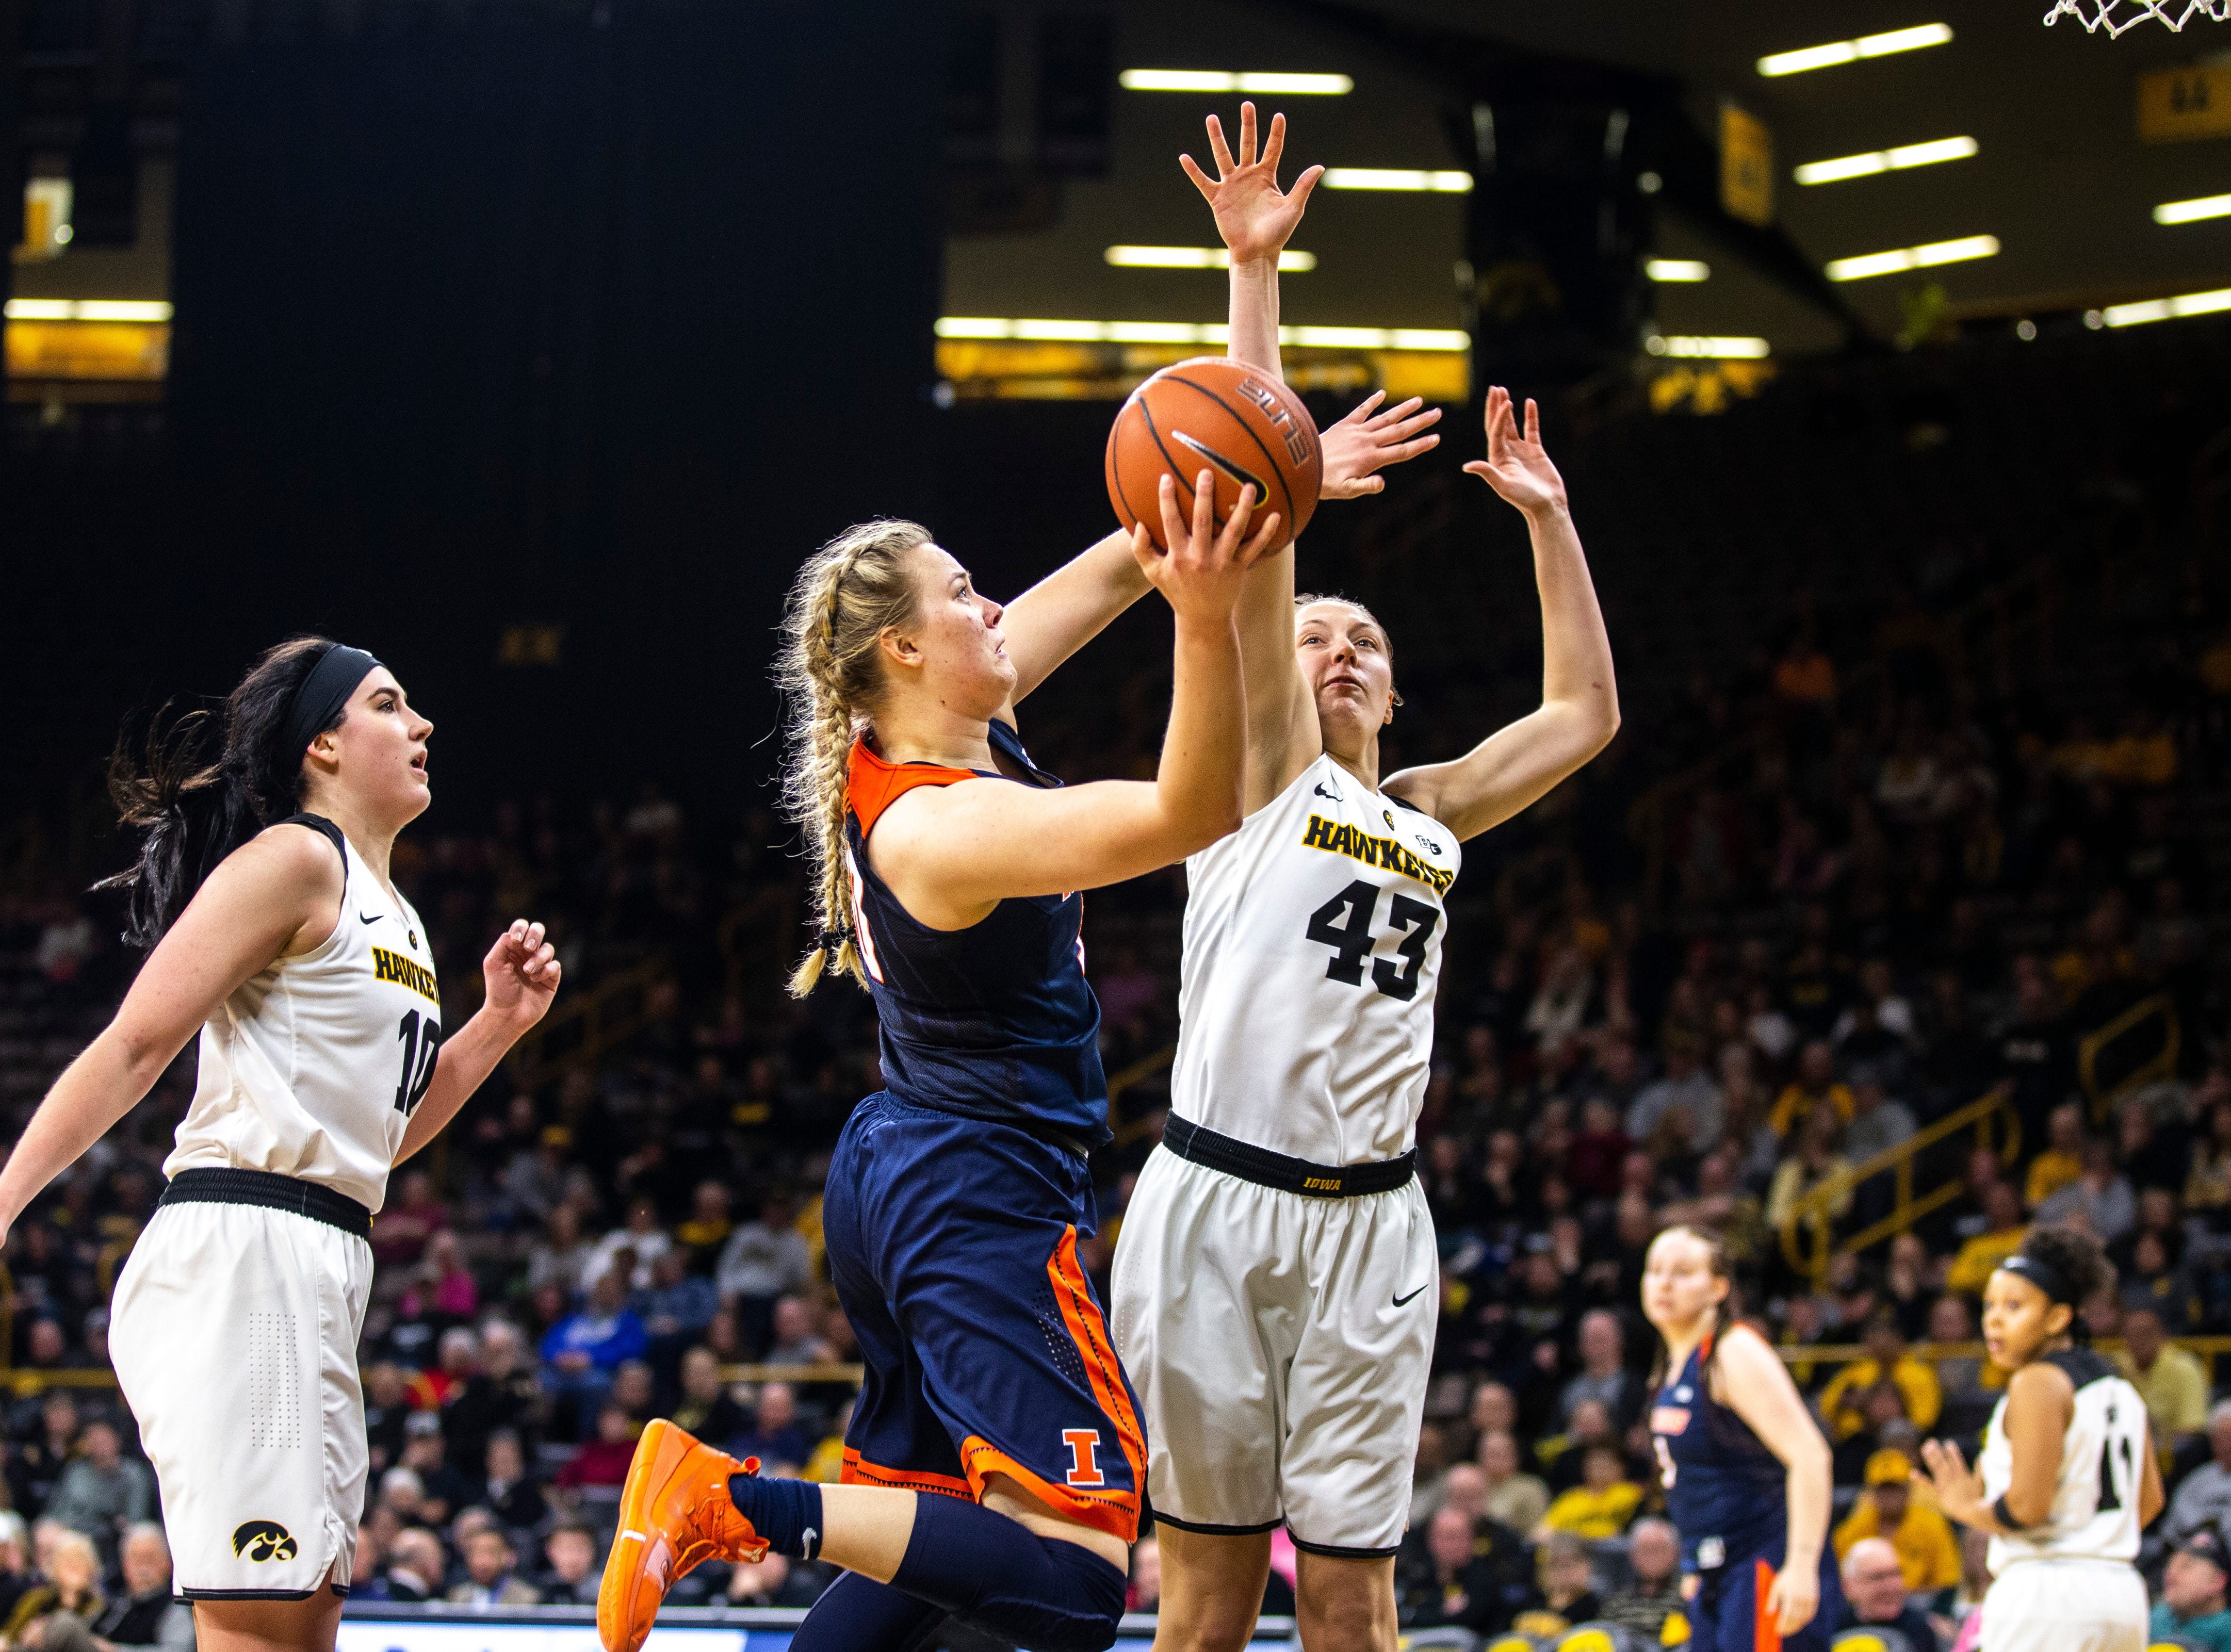 Illinois guard Courtney Joens drives to the basket while Iowa center Megan Gustafson, left, and Iowa forward Amanda Ollinger (43) defend during a NCAA Big Ten Conference women's basketball game on Thursday, Feb. 14, 2019 at Carver-Hawkeye Arena in Iowa City, Iowa.